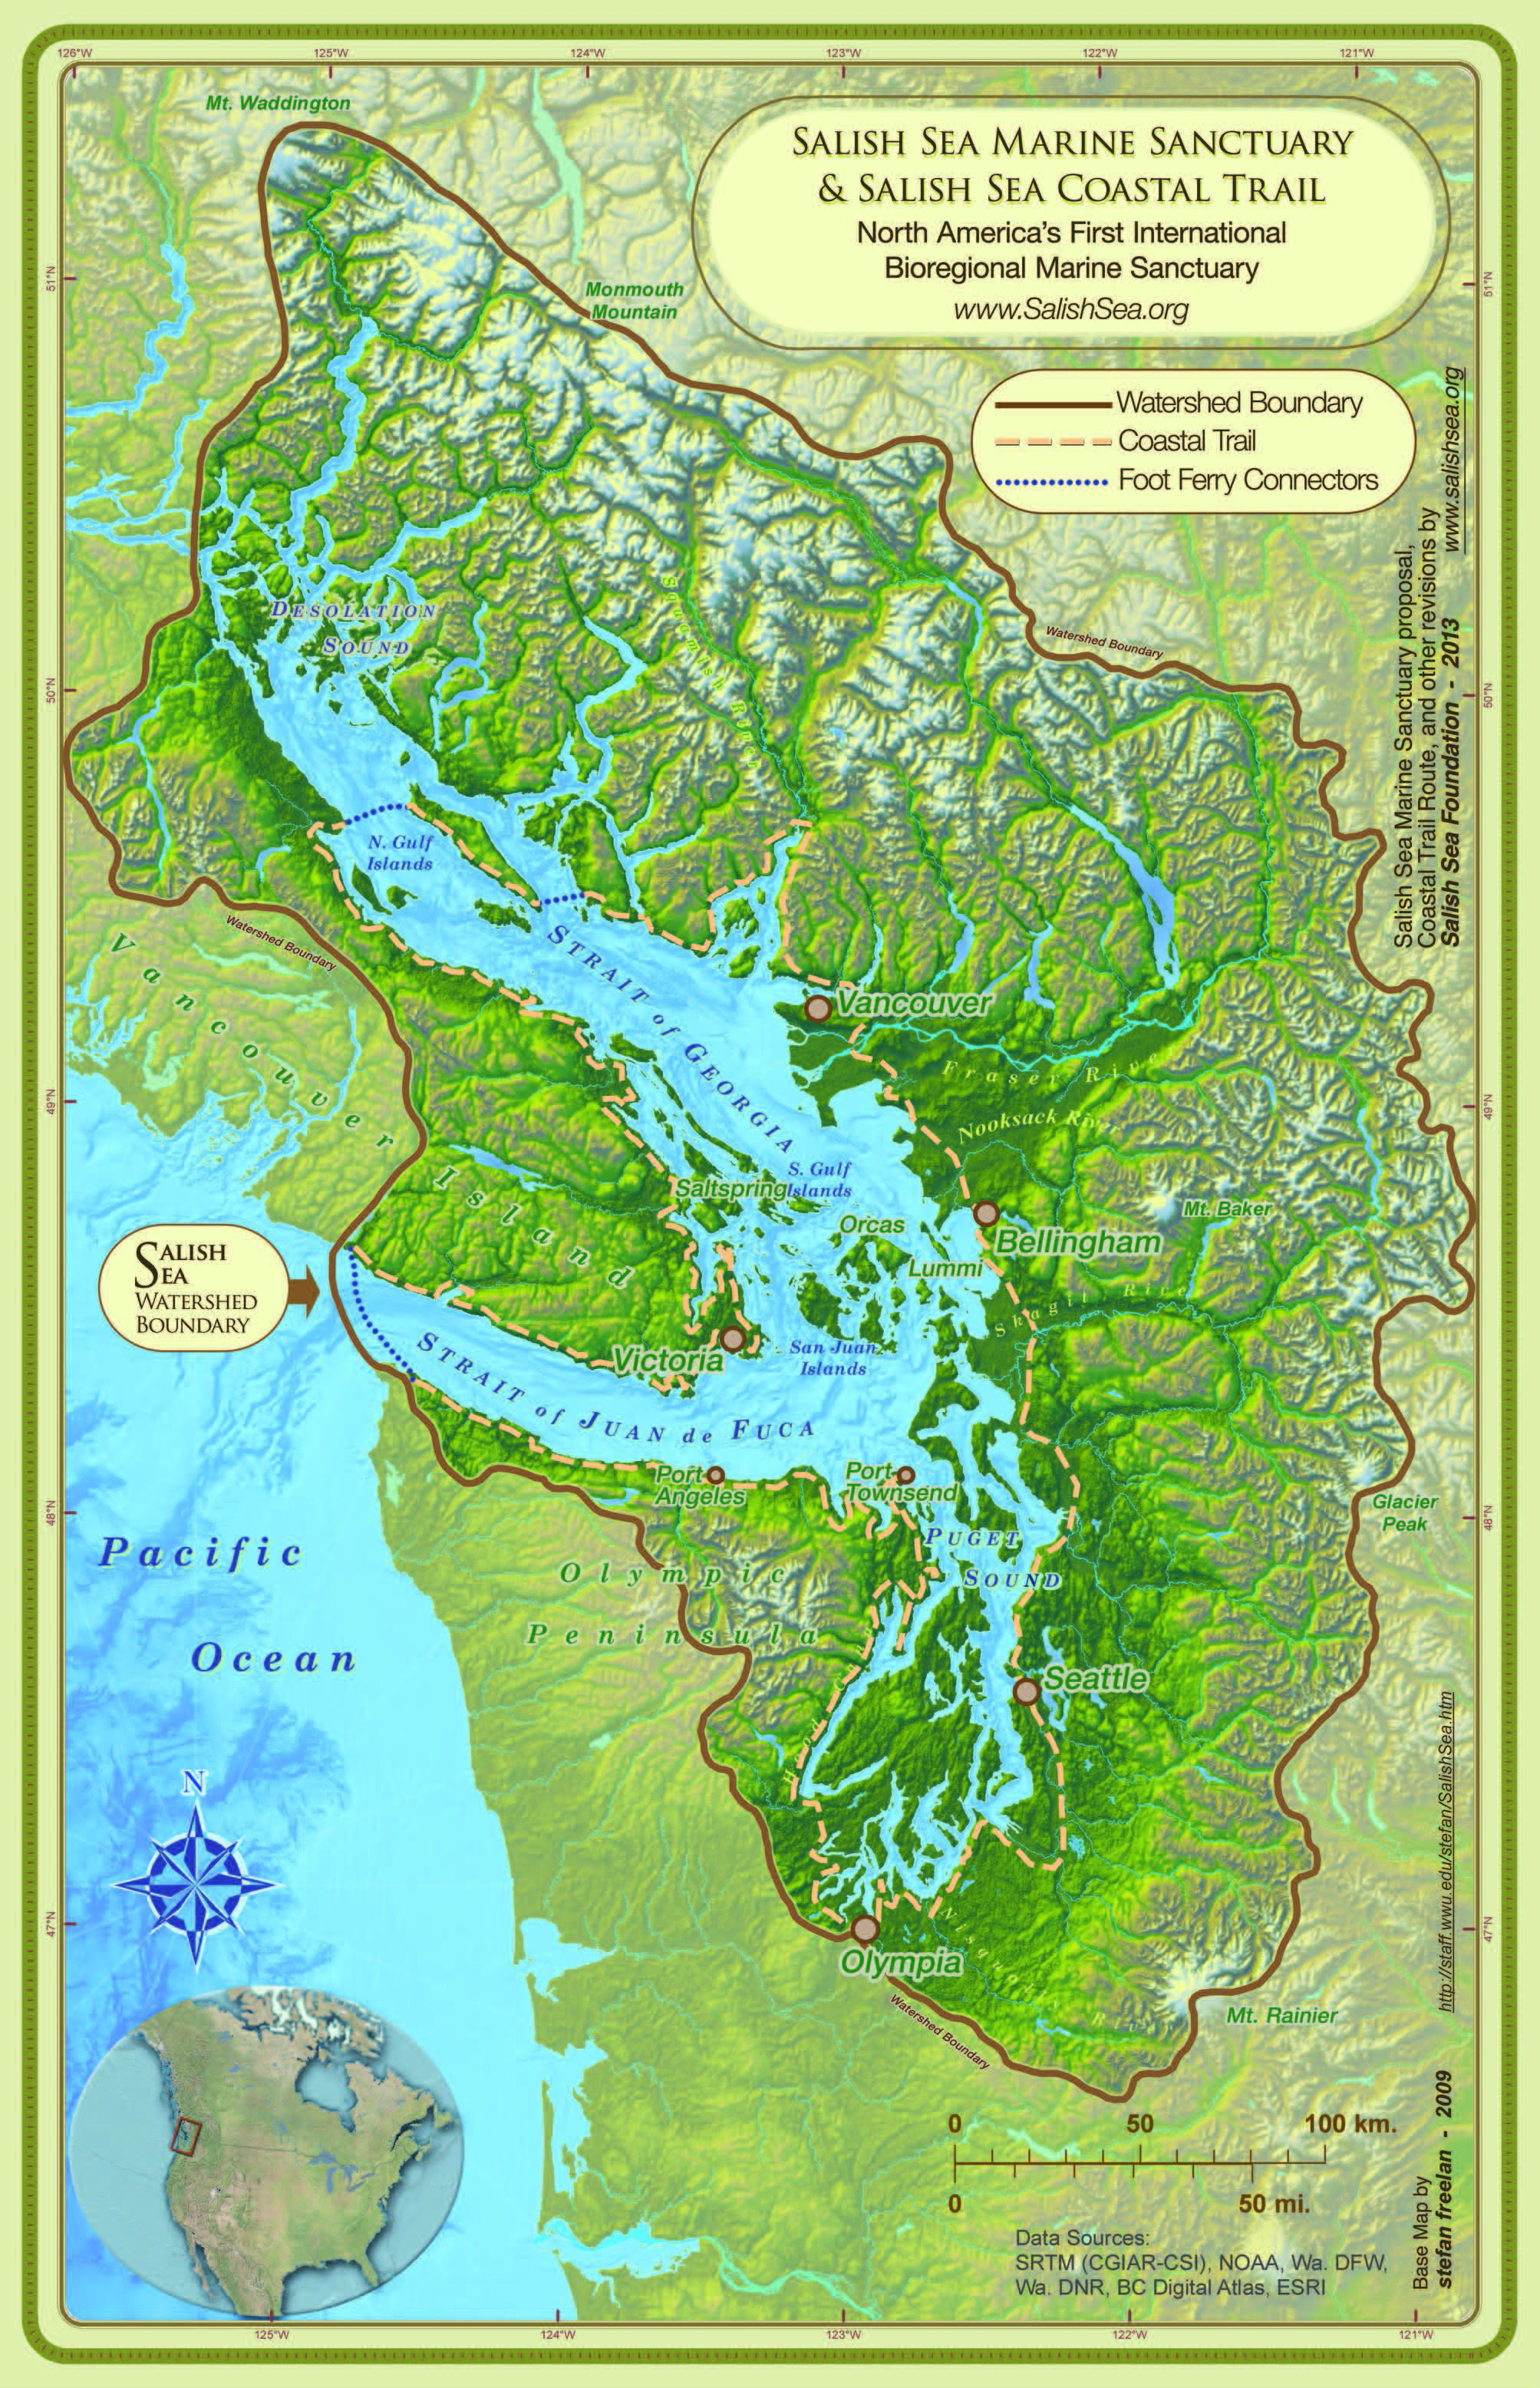 salish-sea-marine-sanctuary-map.jpg